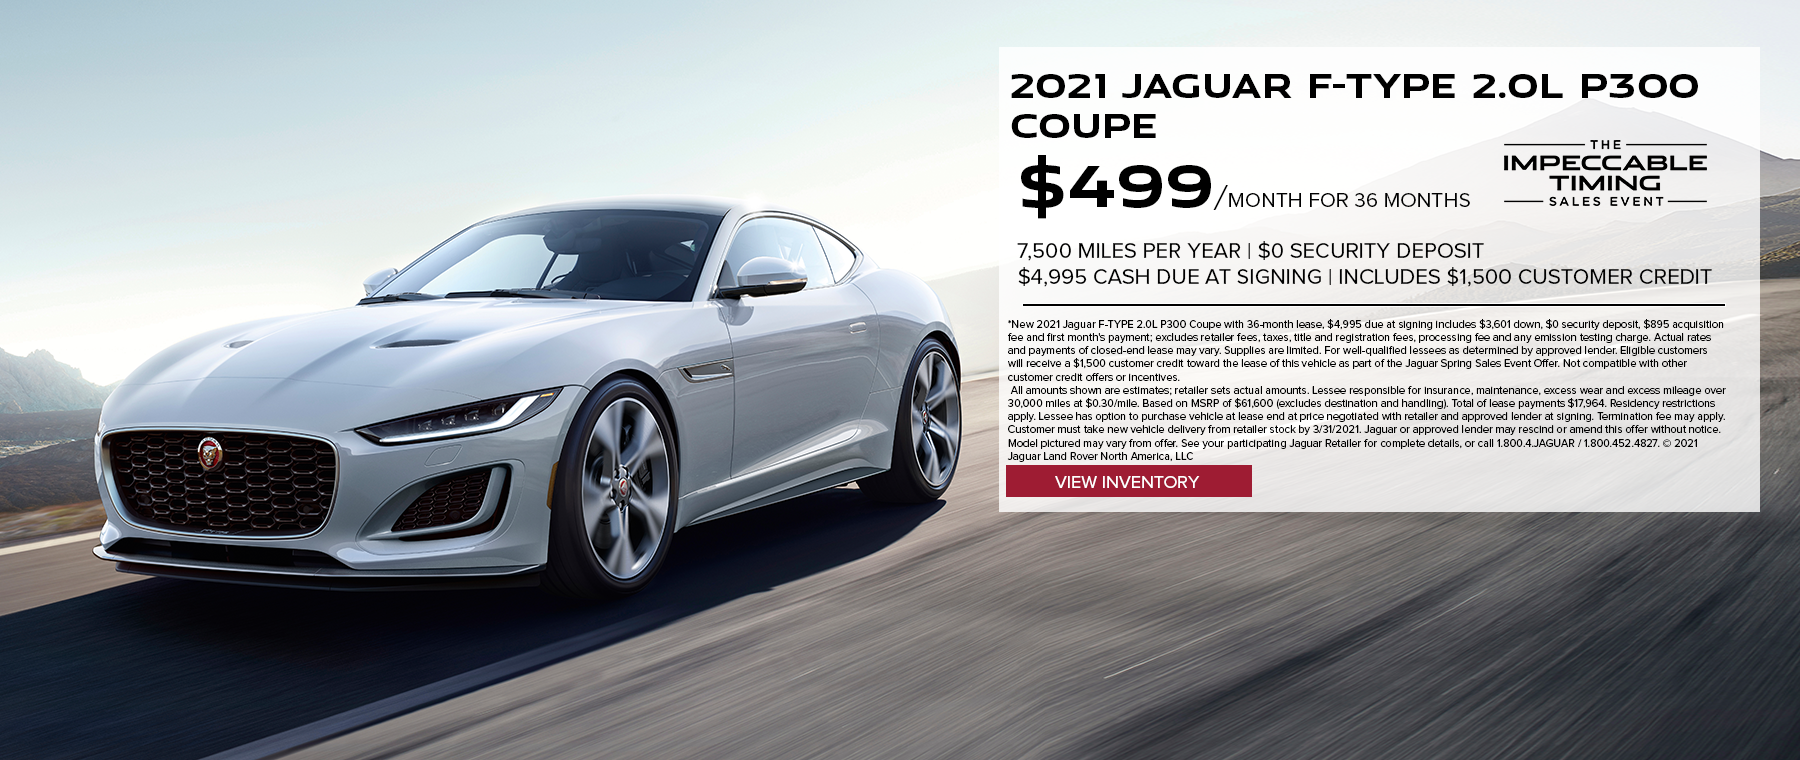 NEW 2021 JAGUAR F-TYPE 2.0L P300 COUPE. $499 PER MONTH. 36 MONTH LEASE TERM. $4,995 CASH DUE AT SIGNING. $0 SECURITY DEPOSIT. 10,000 MILES PER YEAR. INCLUDES $1,500 CUSTOMER CREDIT. EXCLUDES RETAILER FEES, TAXES, TITLE AND REGISTRATION FEES, PROCESSING FEE AND ANY EMISSION TESTING CHARGE. INCLUDES $1,500 CUSTOMER CREDIT. OFFER ENDS 3/31/2021.